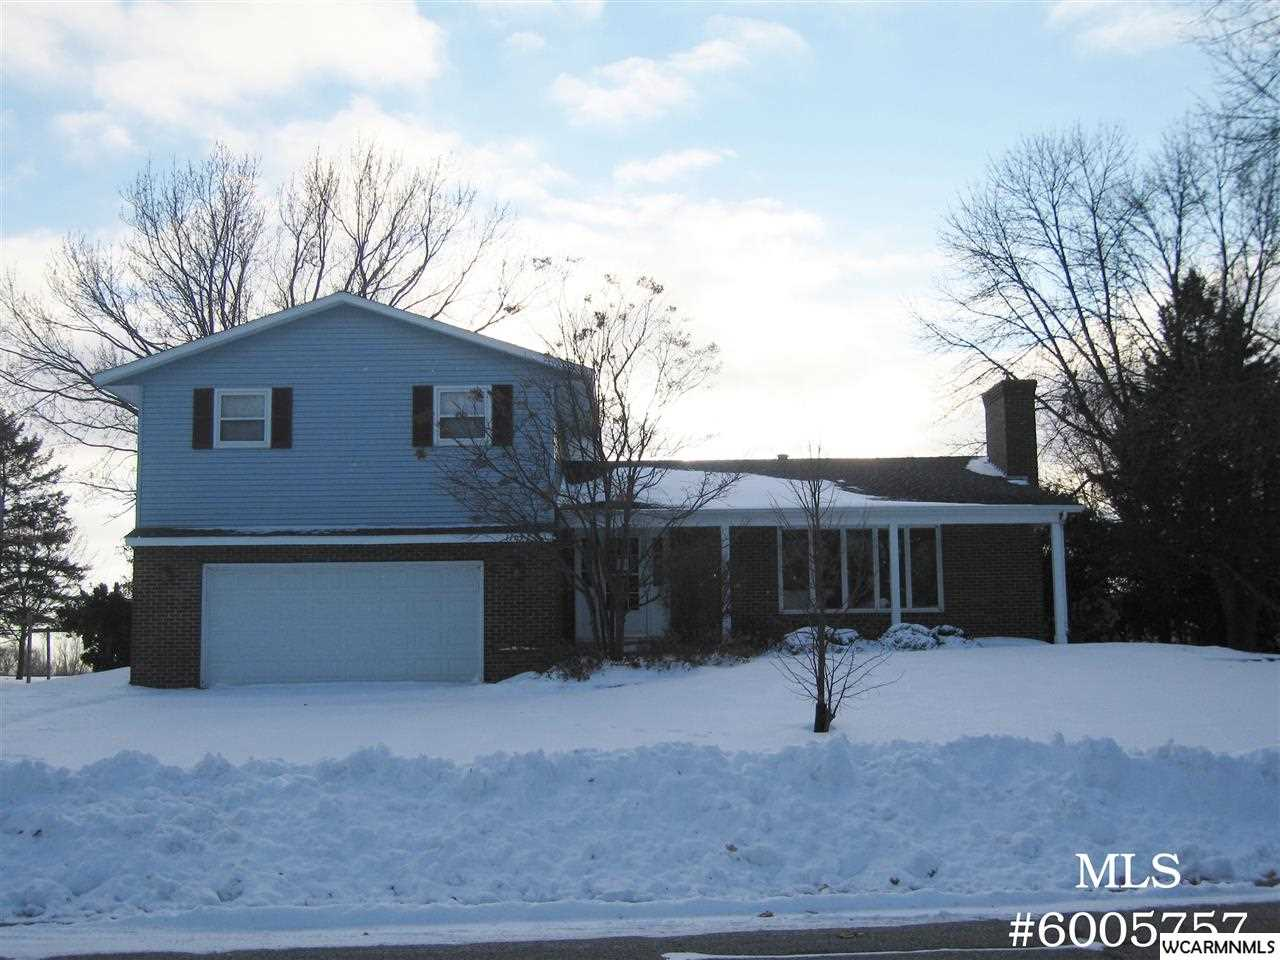 1109 27th St NW, Willmar, MN 56201